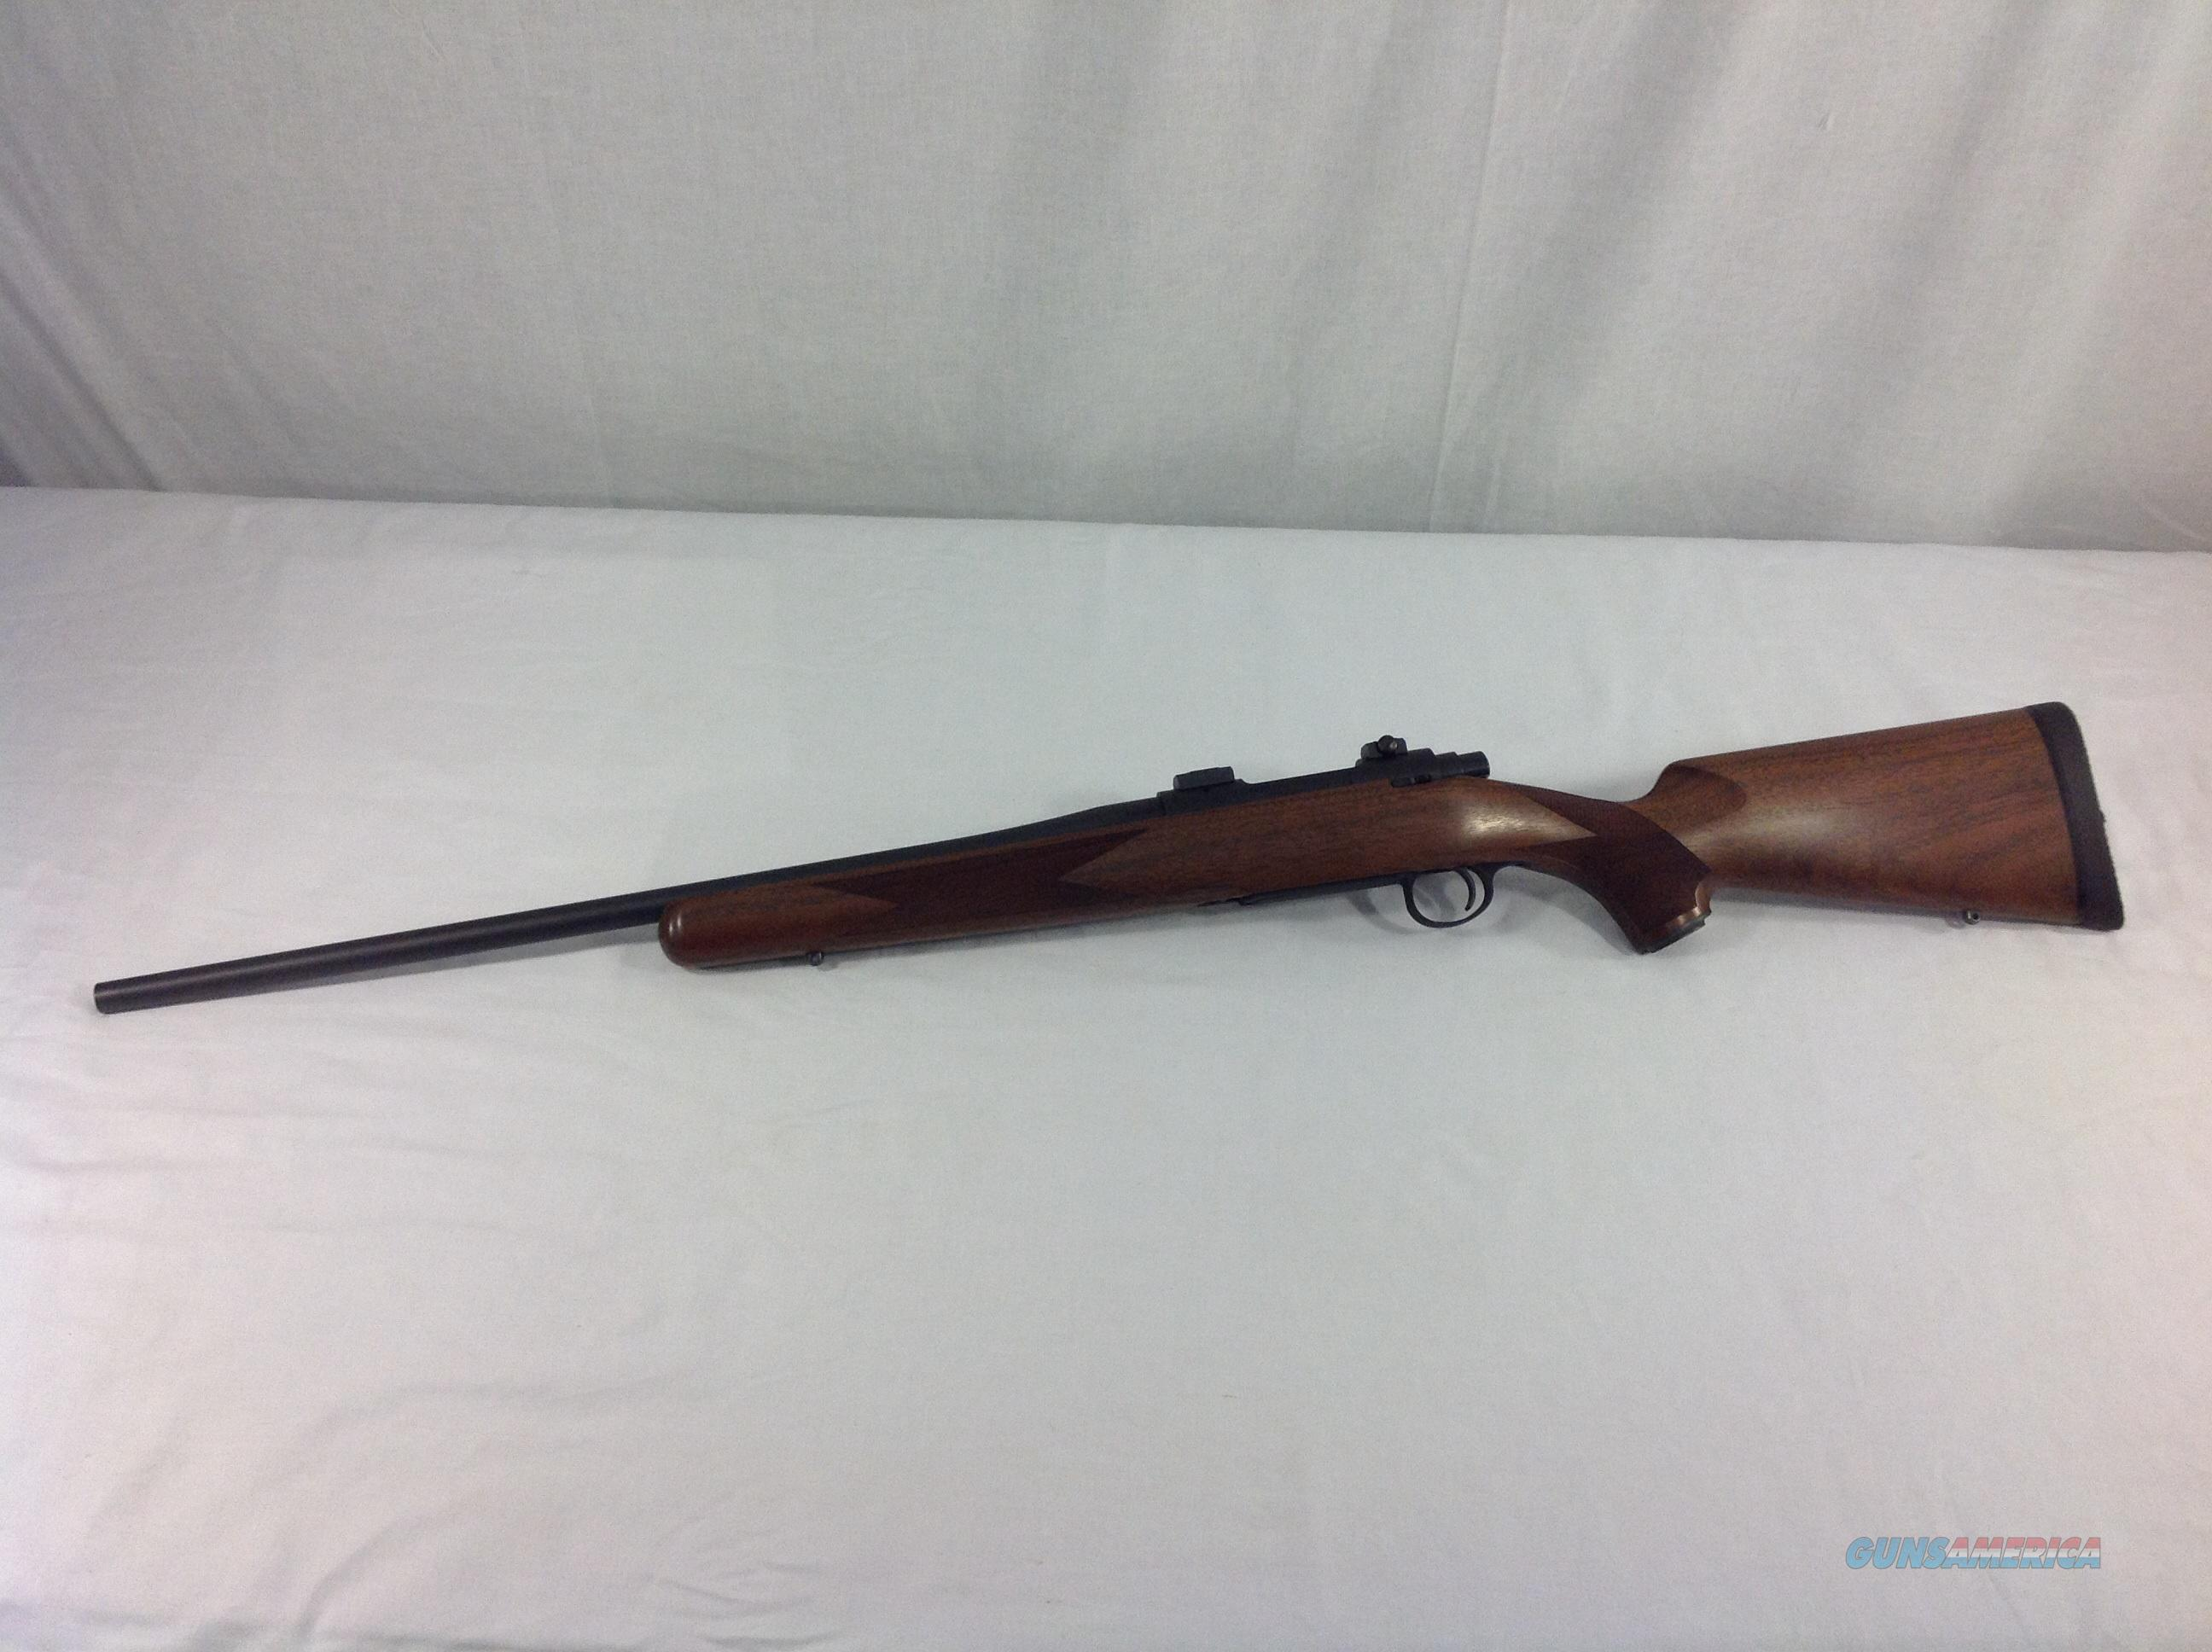 Cooper model 54 Classic  7mm-08  Guns > Rifles > Cooper Arms Rifles